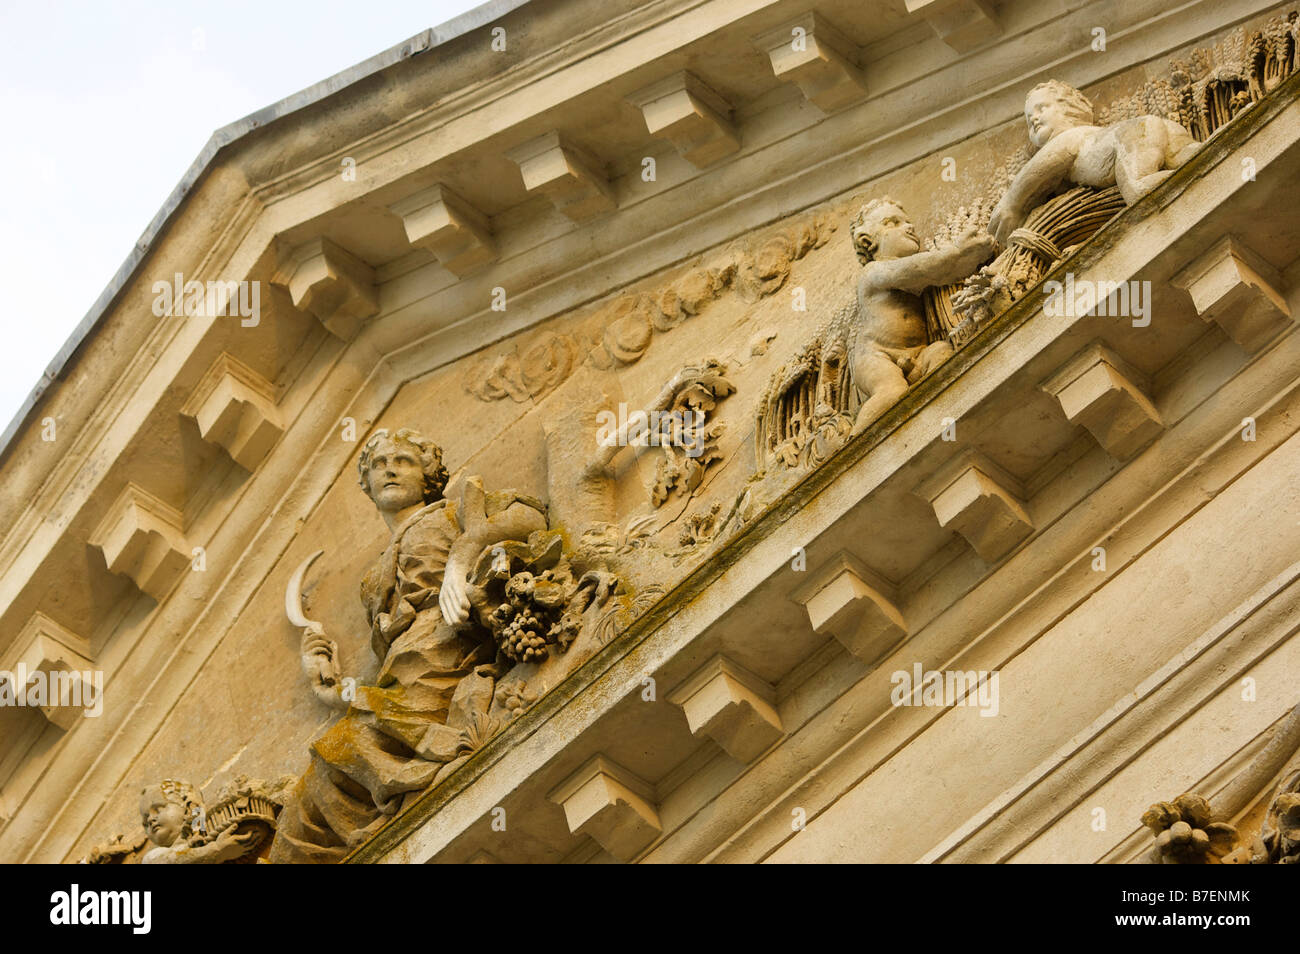 Detail of the sculpture on the pediment of the grade 1 listed 18th century mansion Kirtlinton Park near Oxford UK Stock Photo